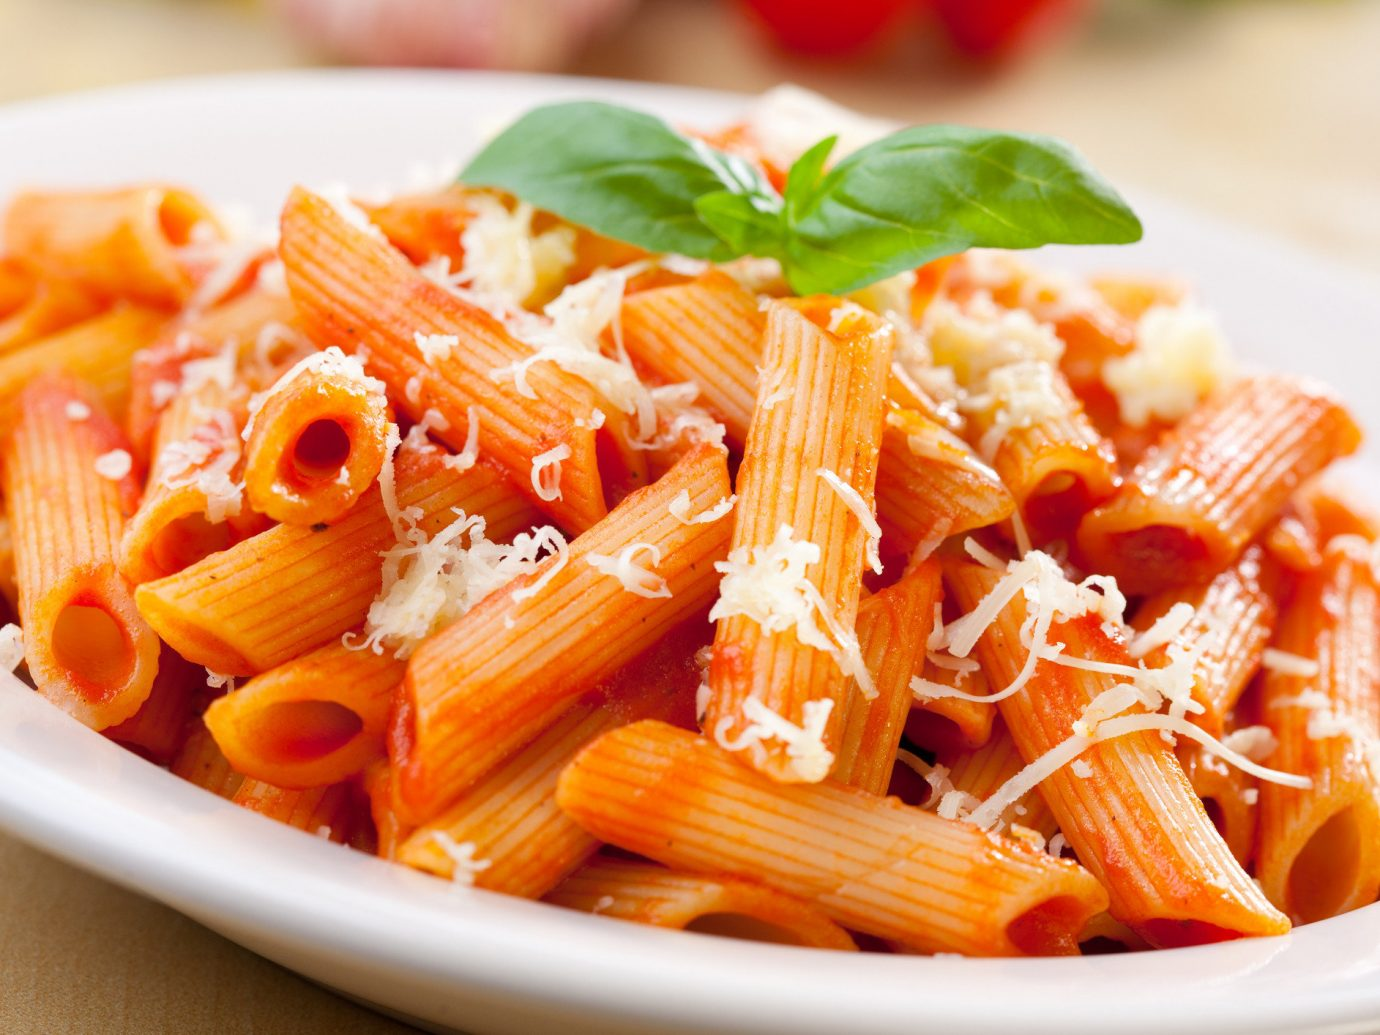 Trip Ideas food plate cuisine penne italian food dish spaghetti pasta bucatini european food produce pici vegetarian food penne alla vodka carbonara vegetable pasta pomodoro fusilli orange sliced